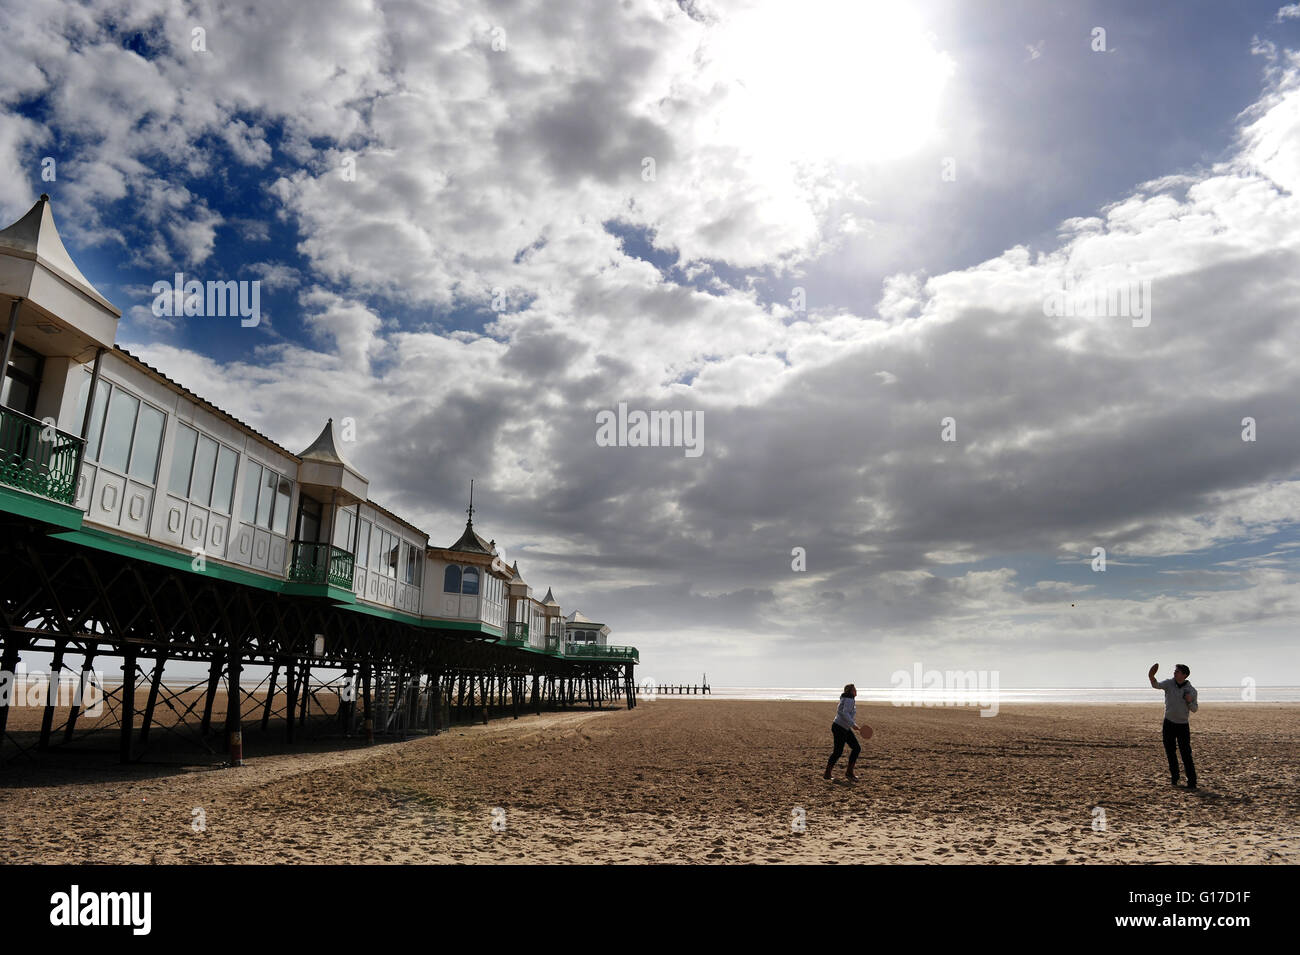 Quiet spring day on the beach at Lytham St Anne's, Lancashire. Picture by Paul Heyes, Monday May 02, 2016. - Stock Image